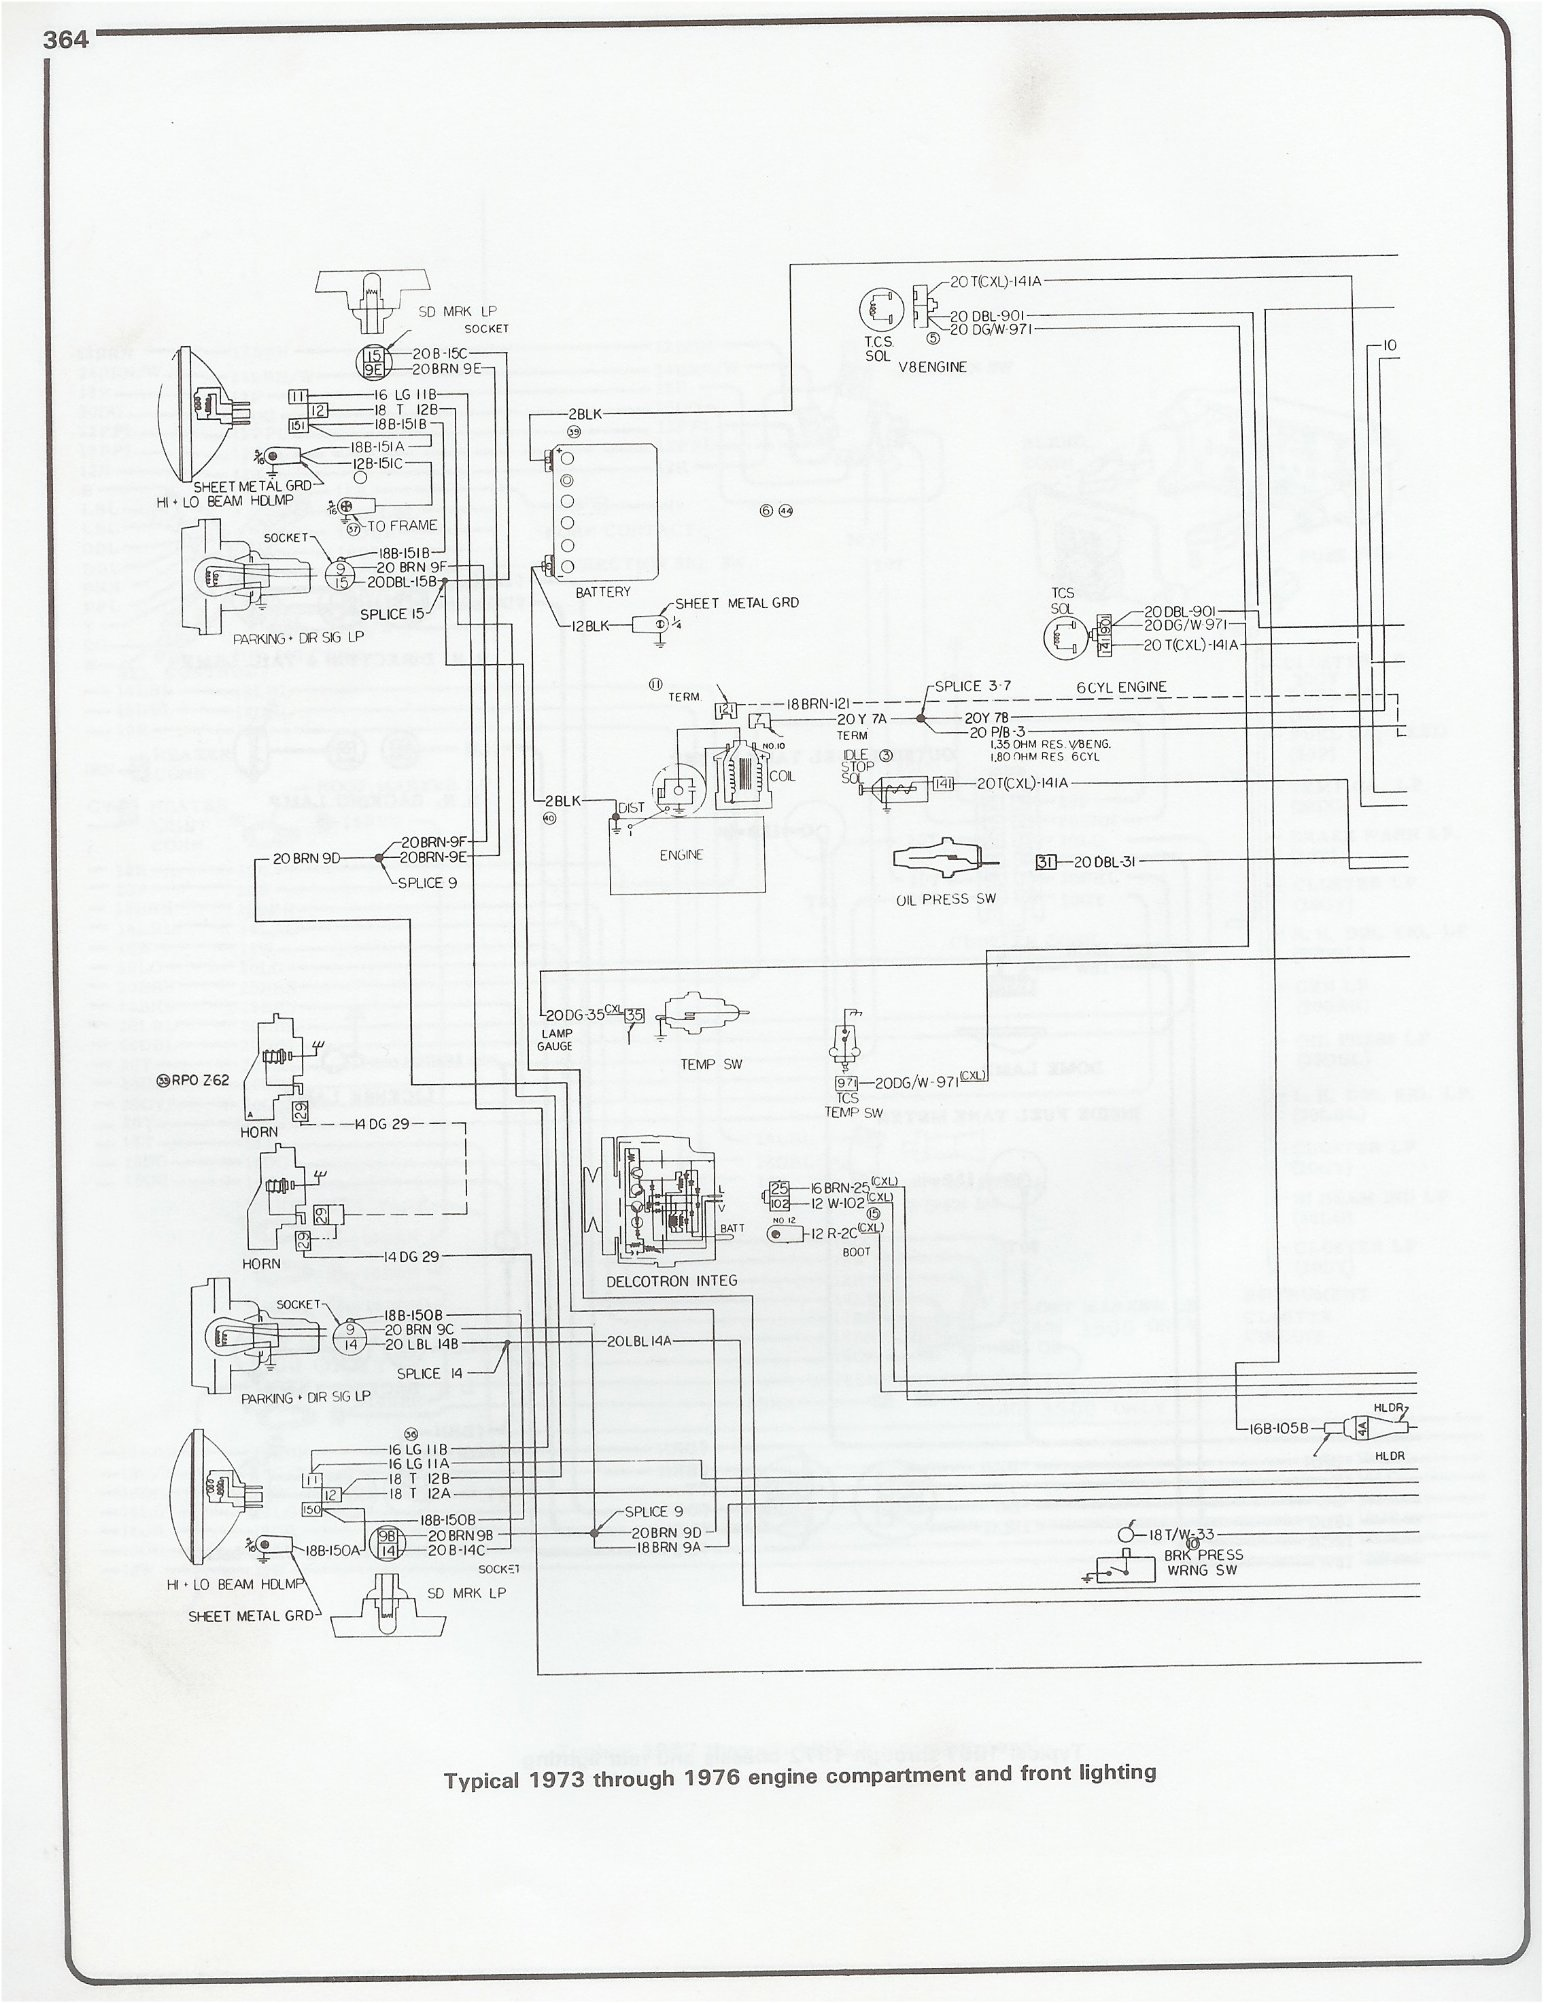 1976 Corvette Wiring Diagram Schematic Library Ez Go Workhorse St35j Complete 73 87 Diagrams Chevy C10 Engine 76 And Front